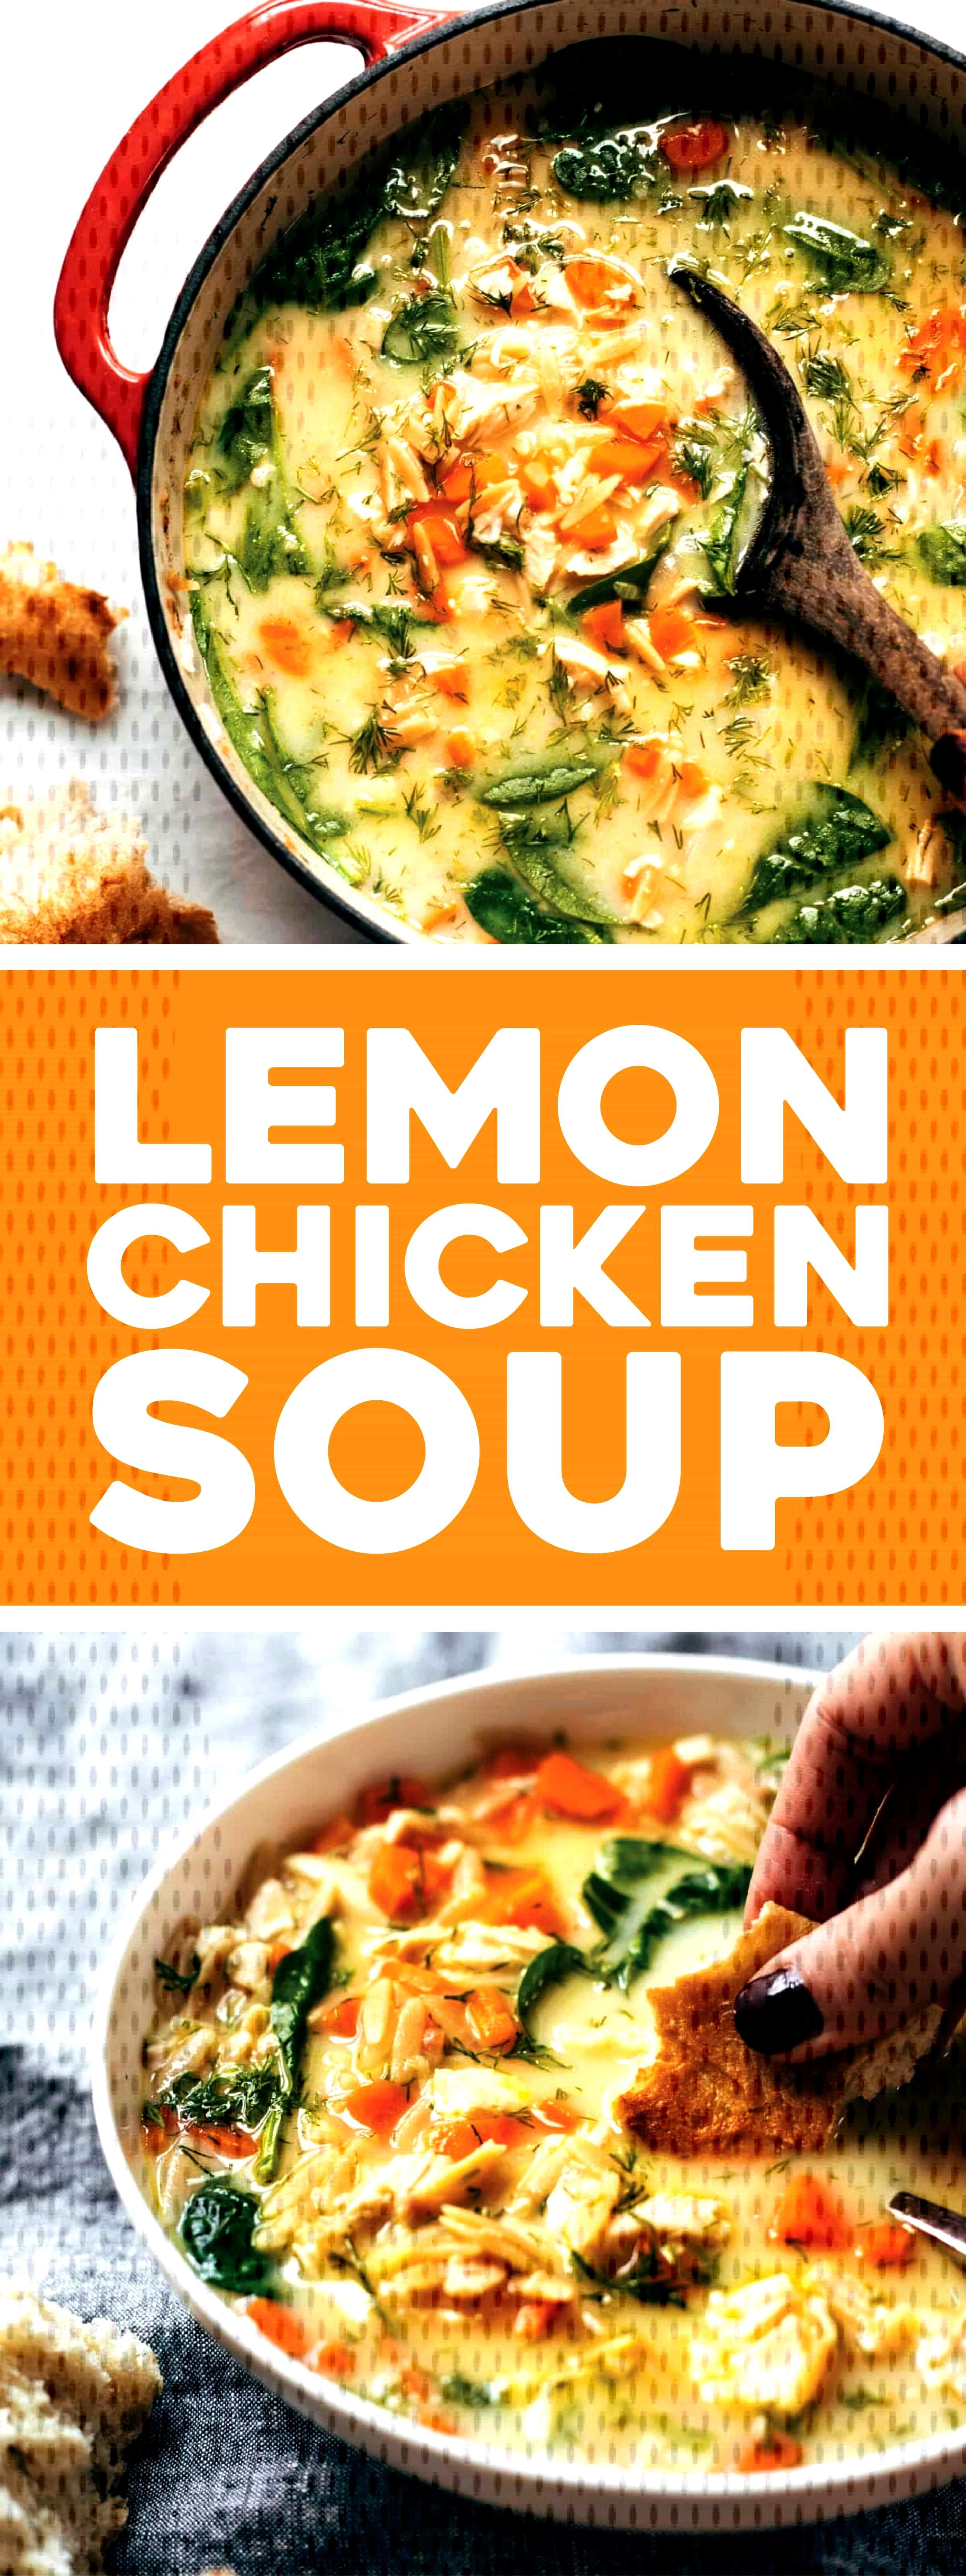 Filling, fresh, and vibrant lemony chicken soup made creamy with NO CREAM and a secret ingredient!